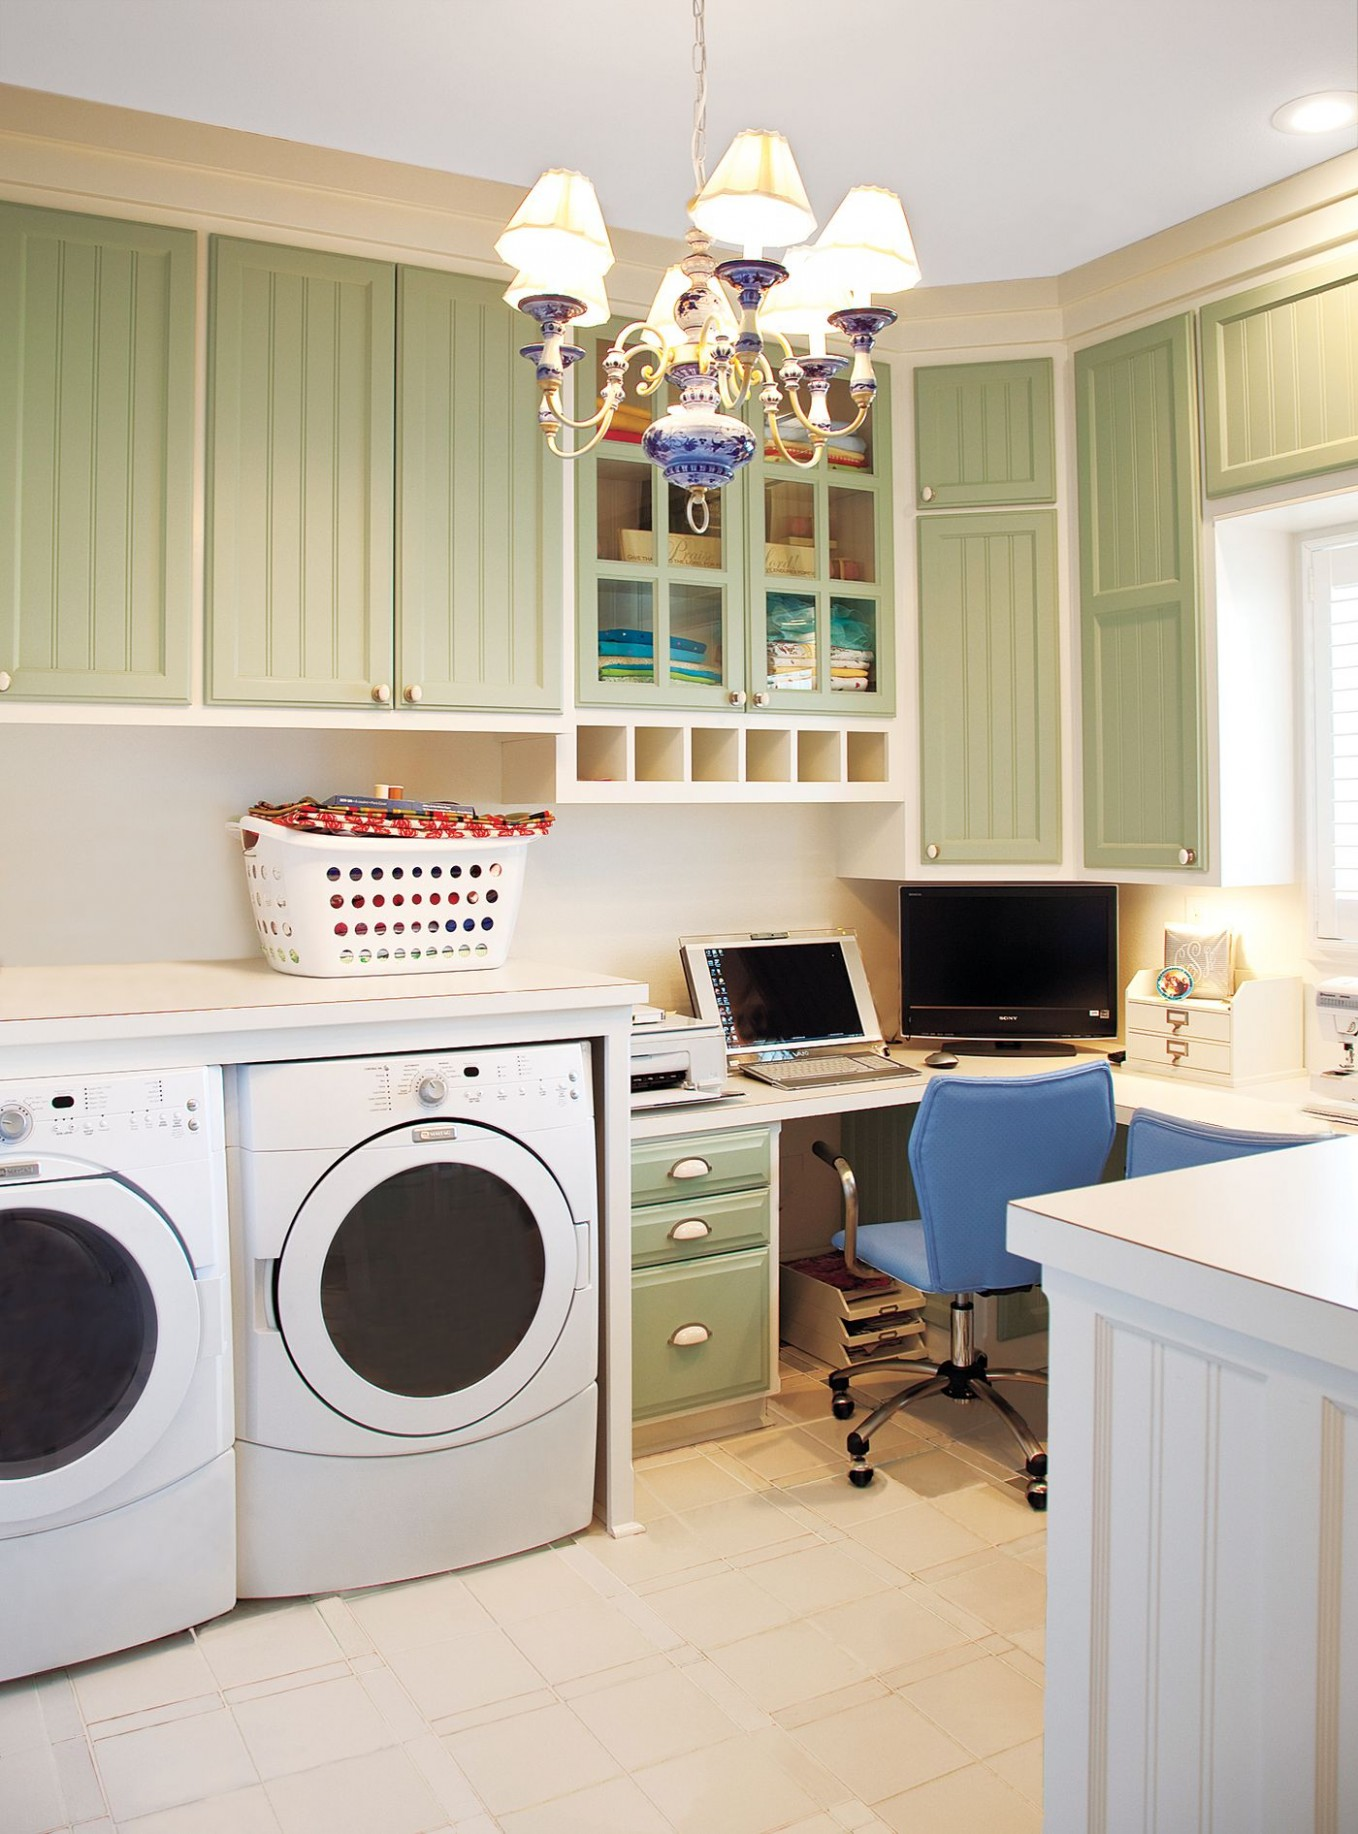 12 Ideas for a Fully Loaded Laundry Room - This Old House - Laundry Room Office Ideas